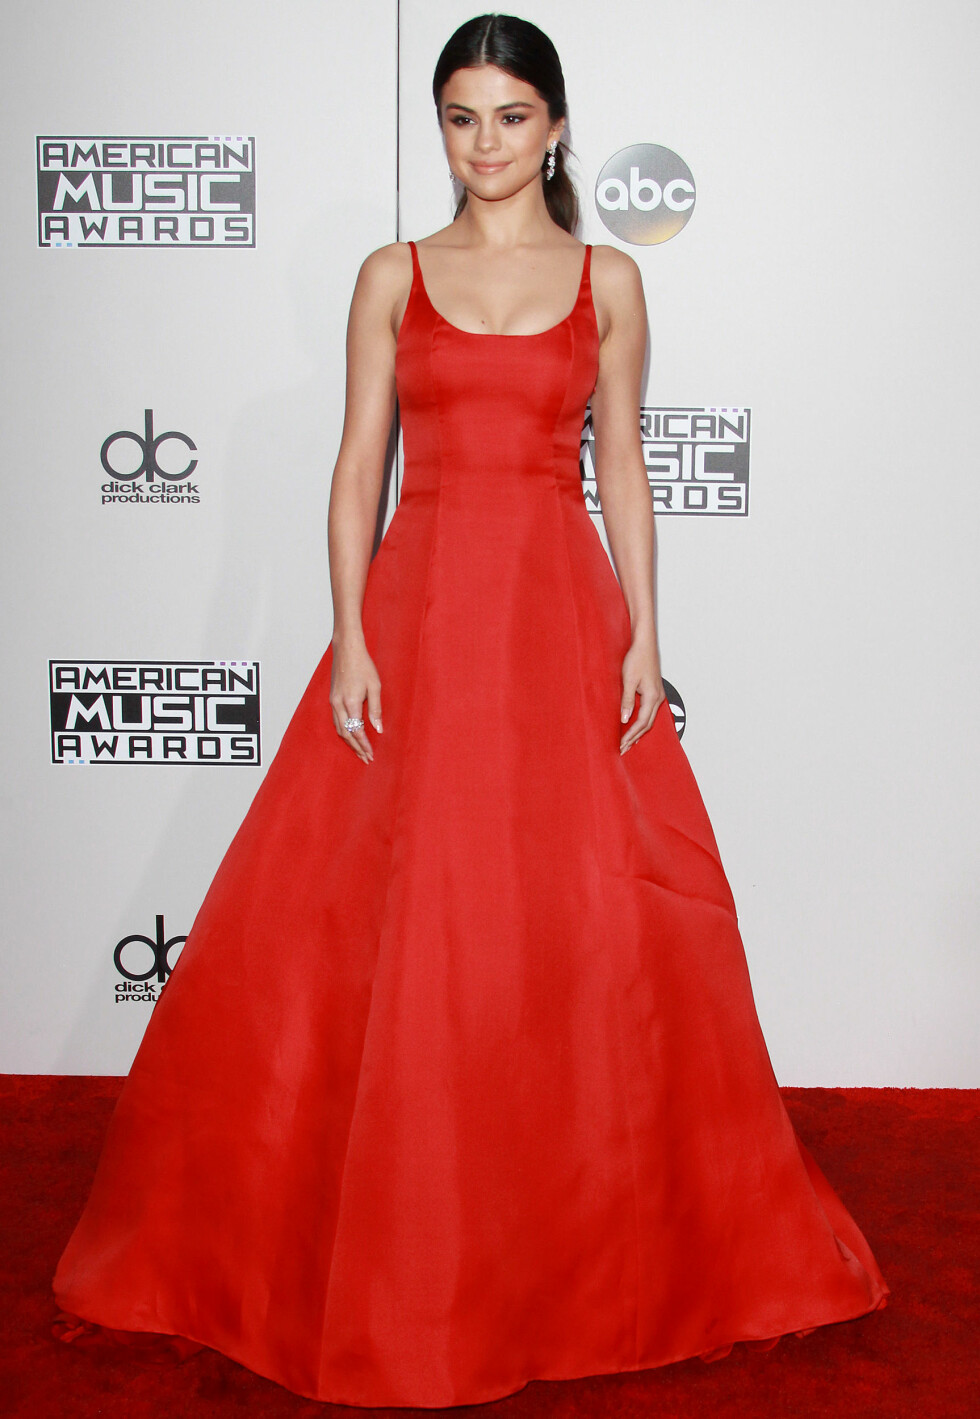 AMERICAN MUSIC AWARDS: Selena Gomez Foto: Broadimage